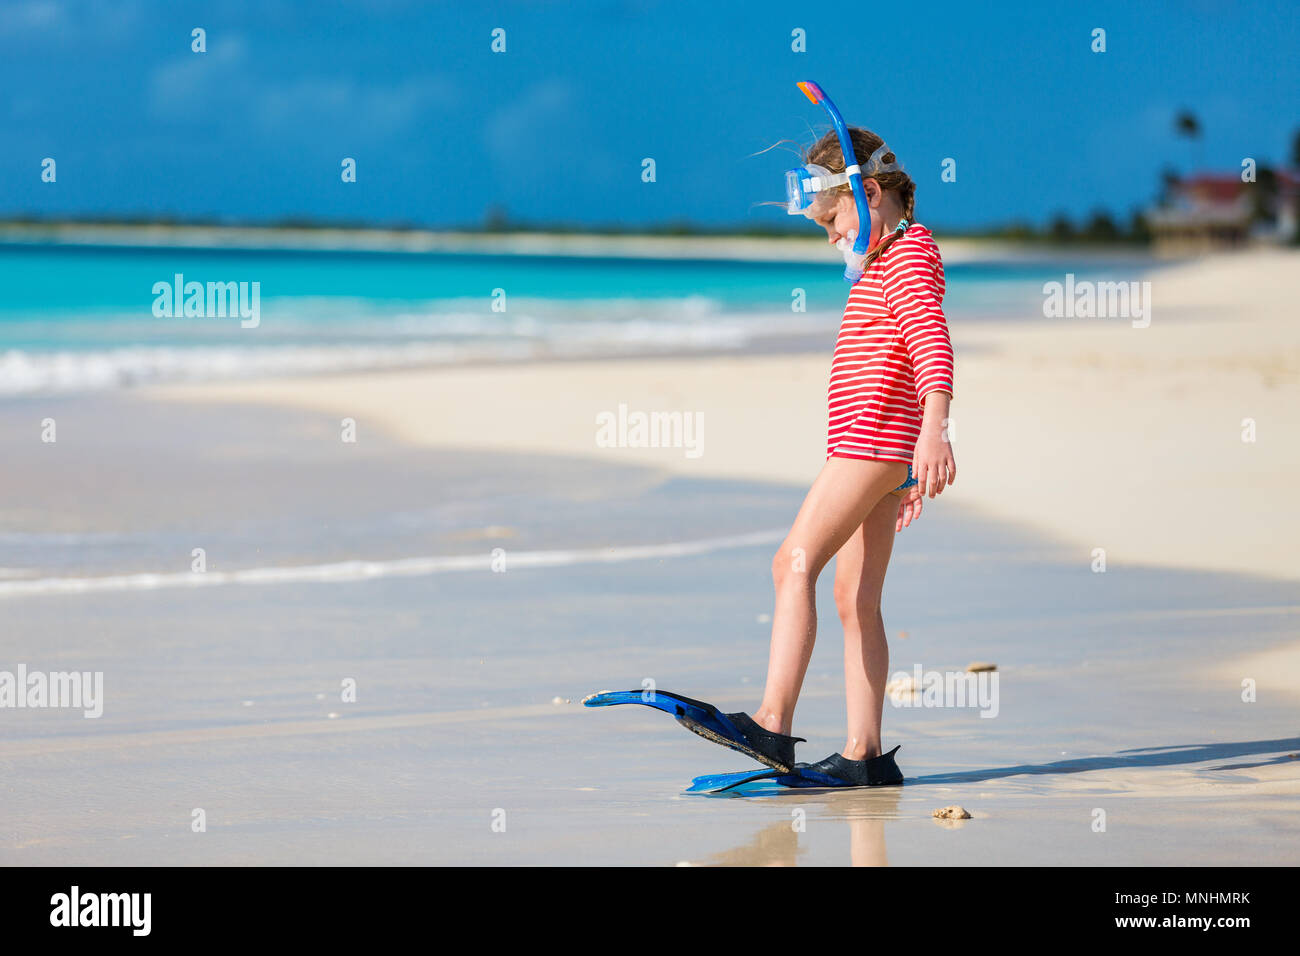 Adorable little girl with snorkeling equipment at beach during summer vacation - Stock Image